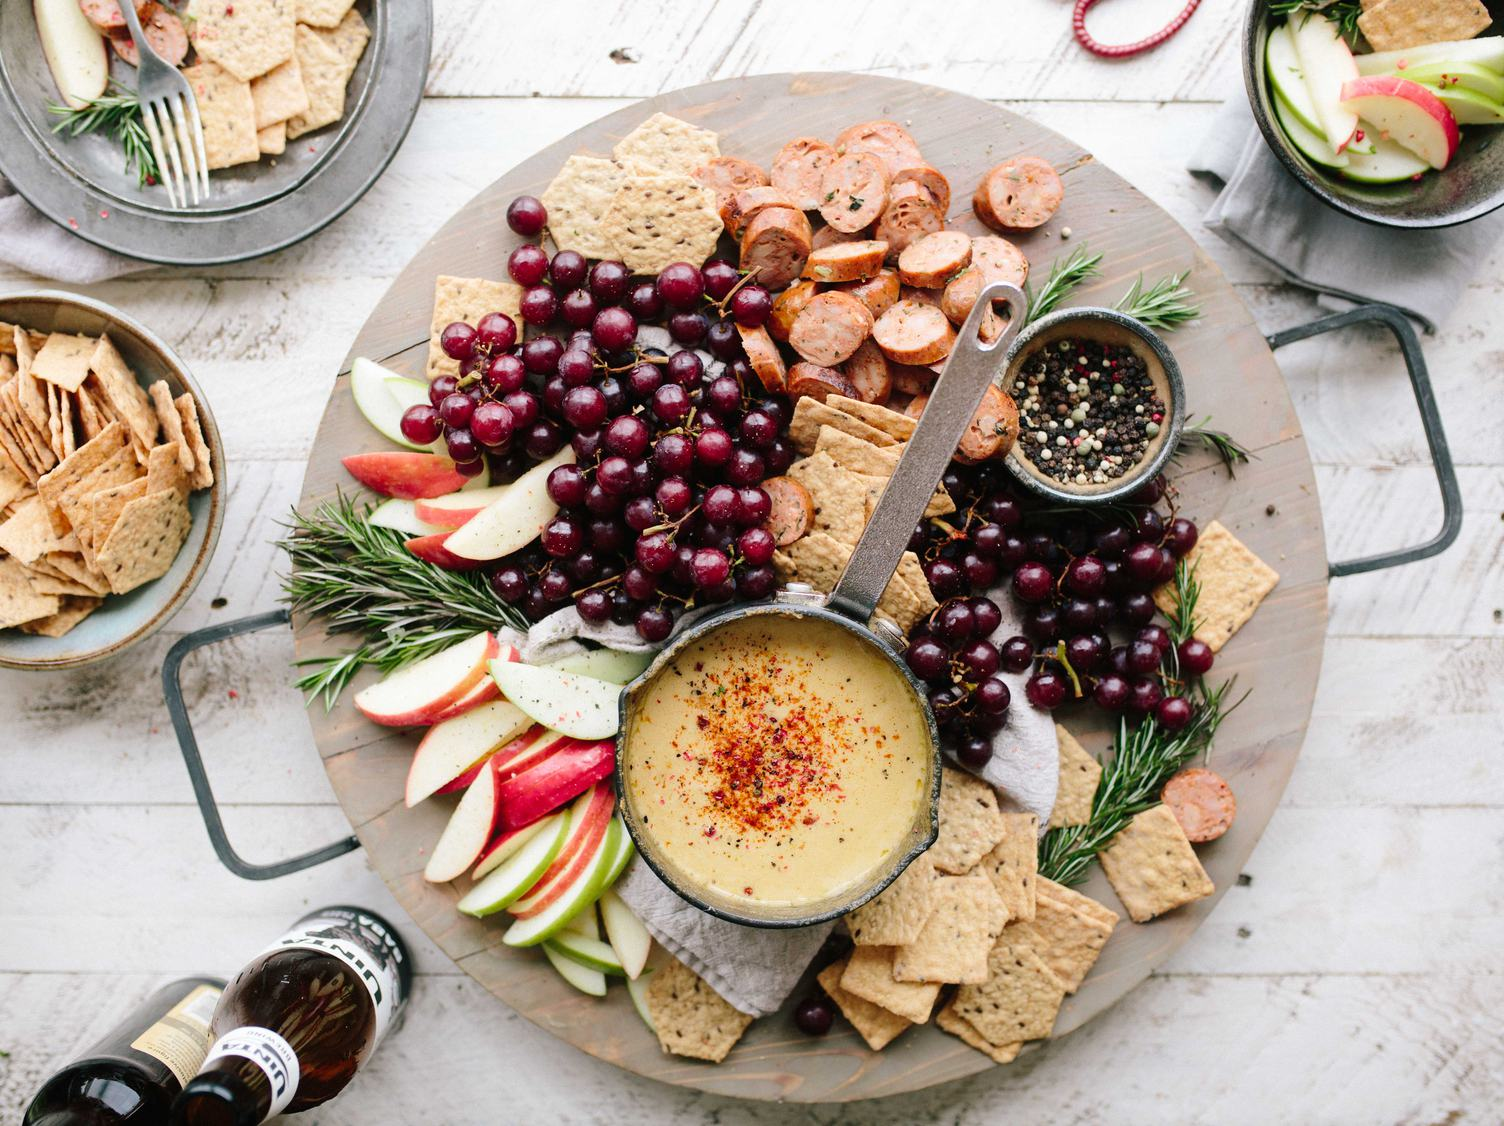 Fruits and Cheese Plate Antipasti Snacks on Wooden Board